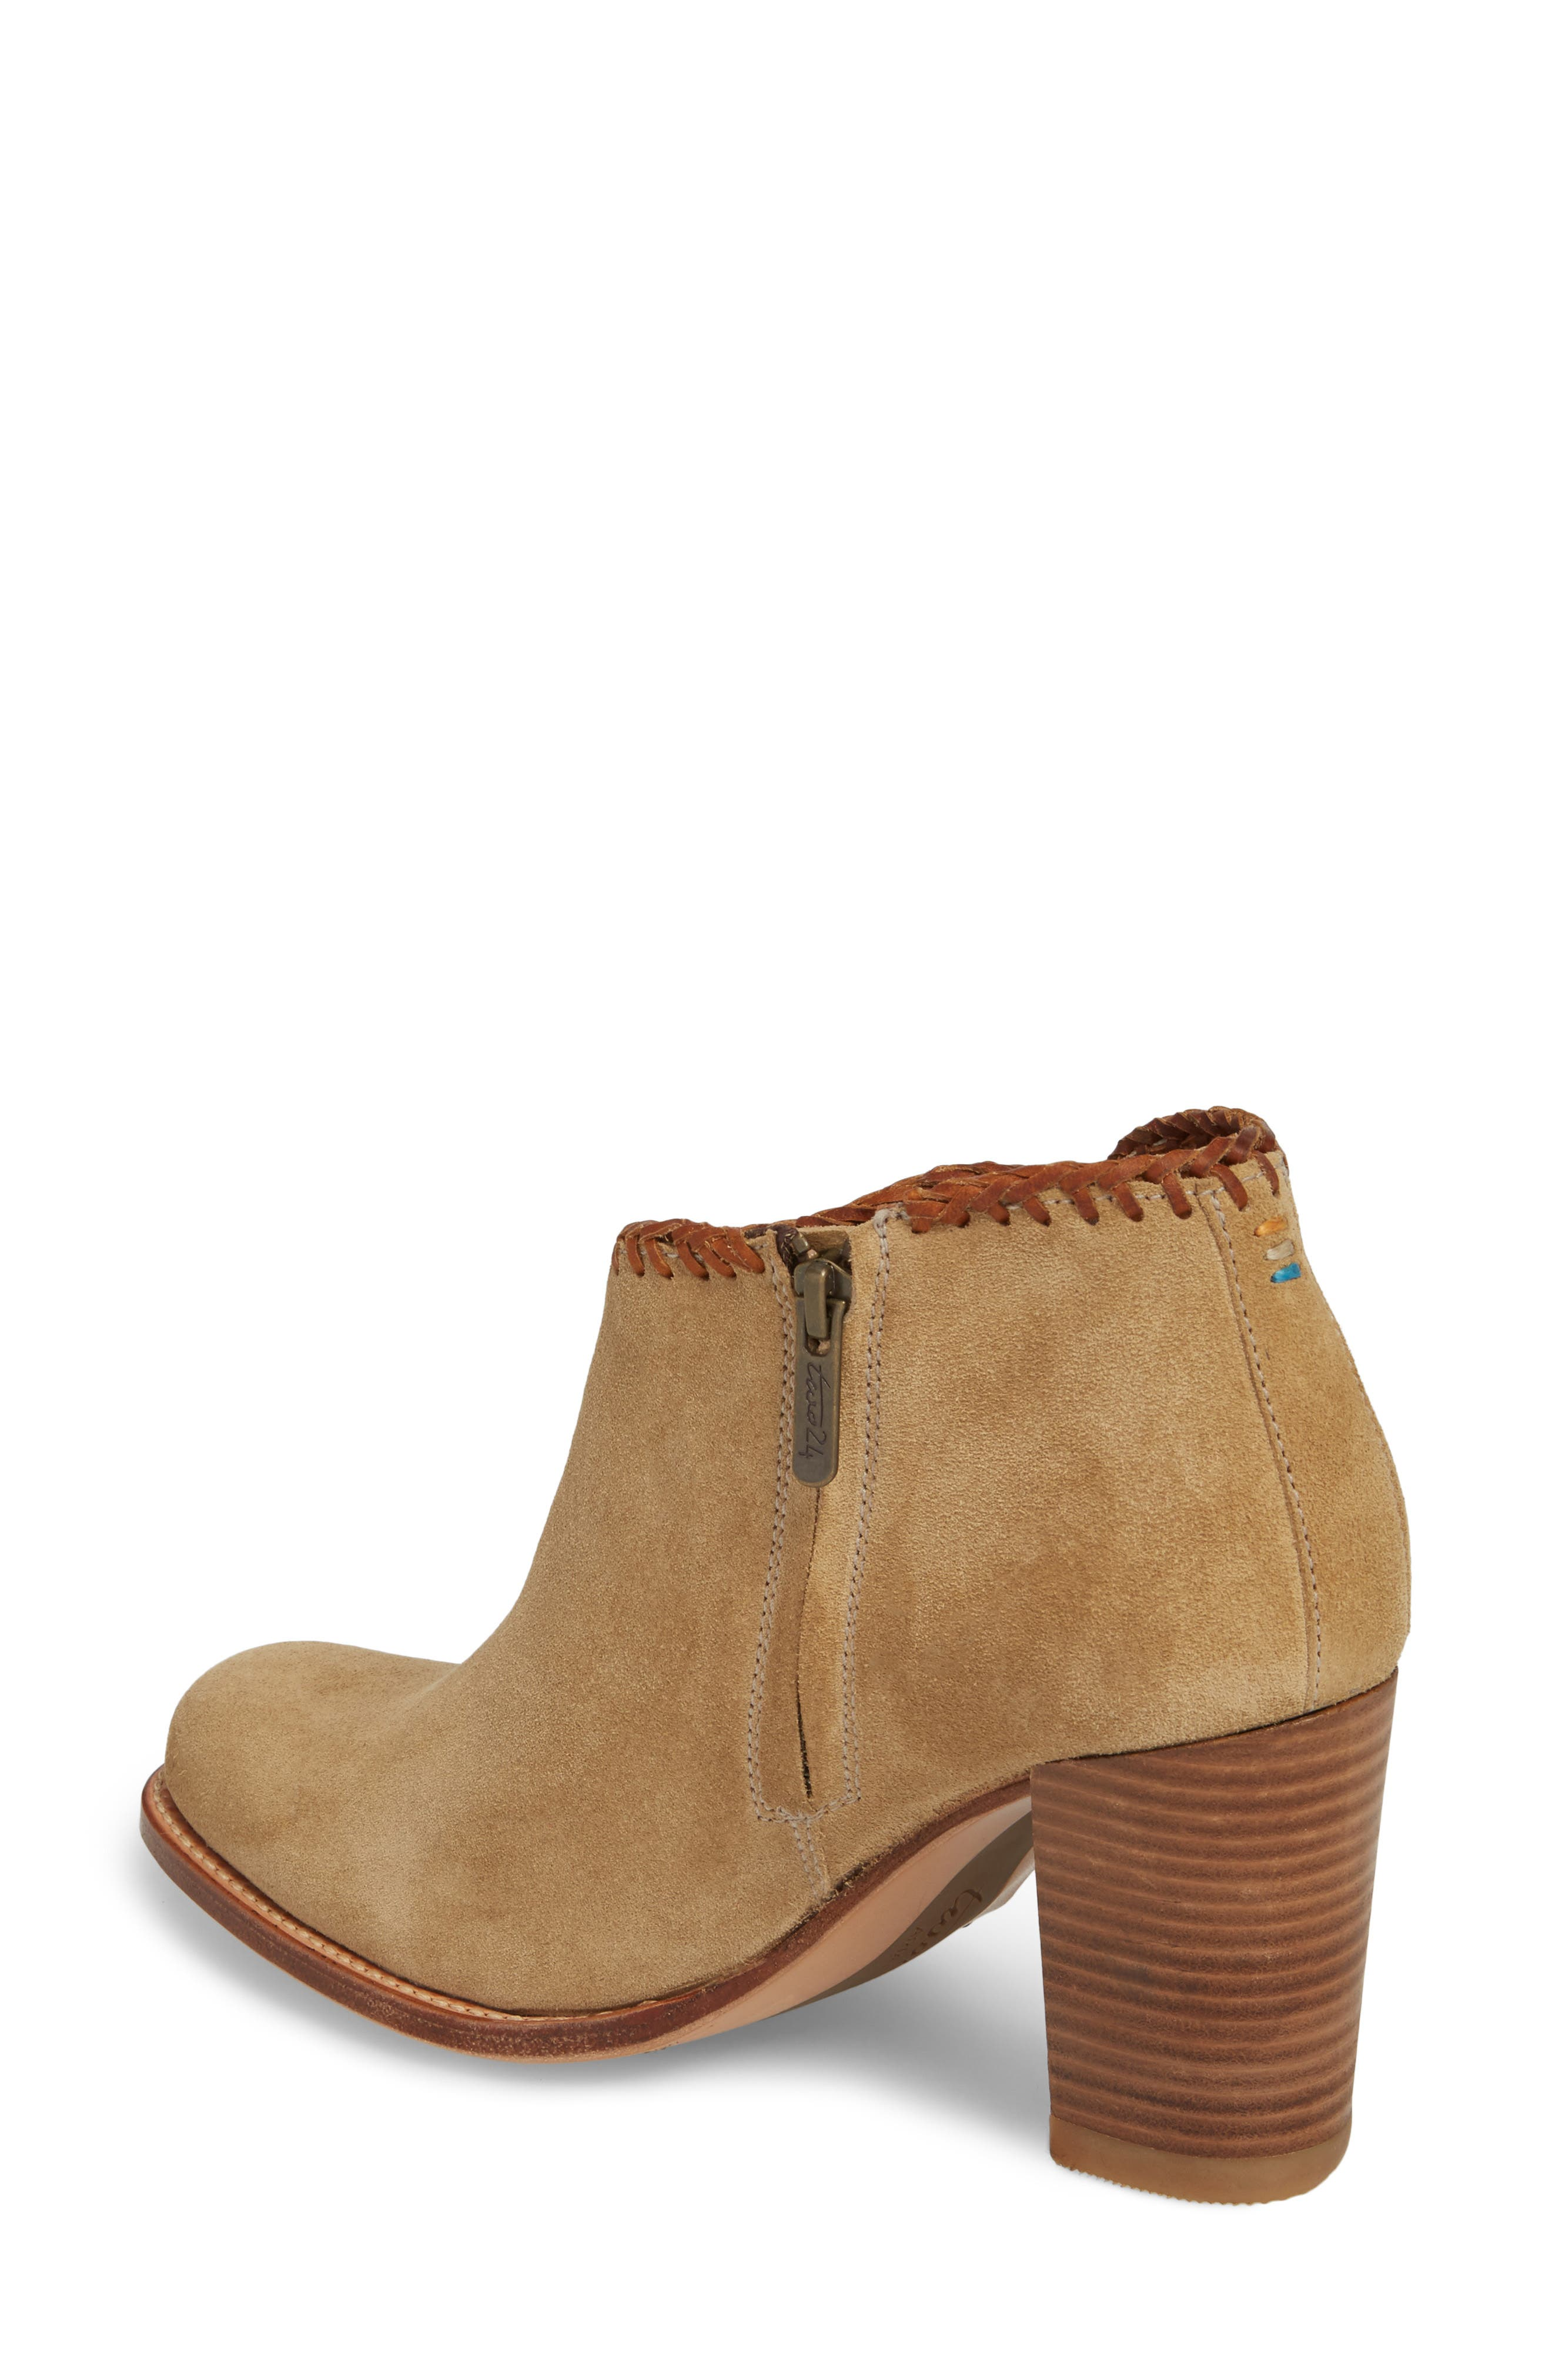 Sonya Fringed Bootie,                             Alternate thumbnail 2, color,                             Taupe Suede